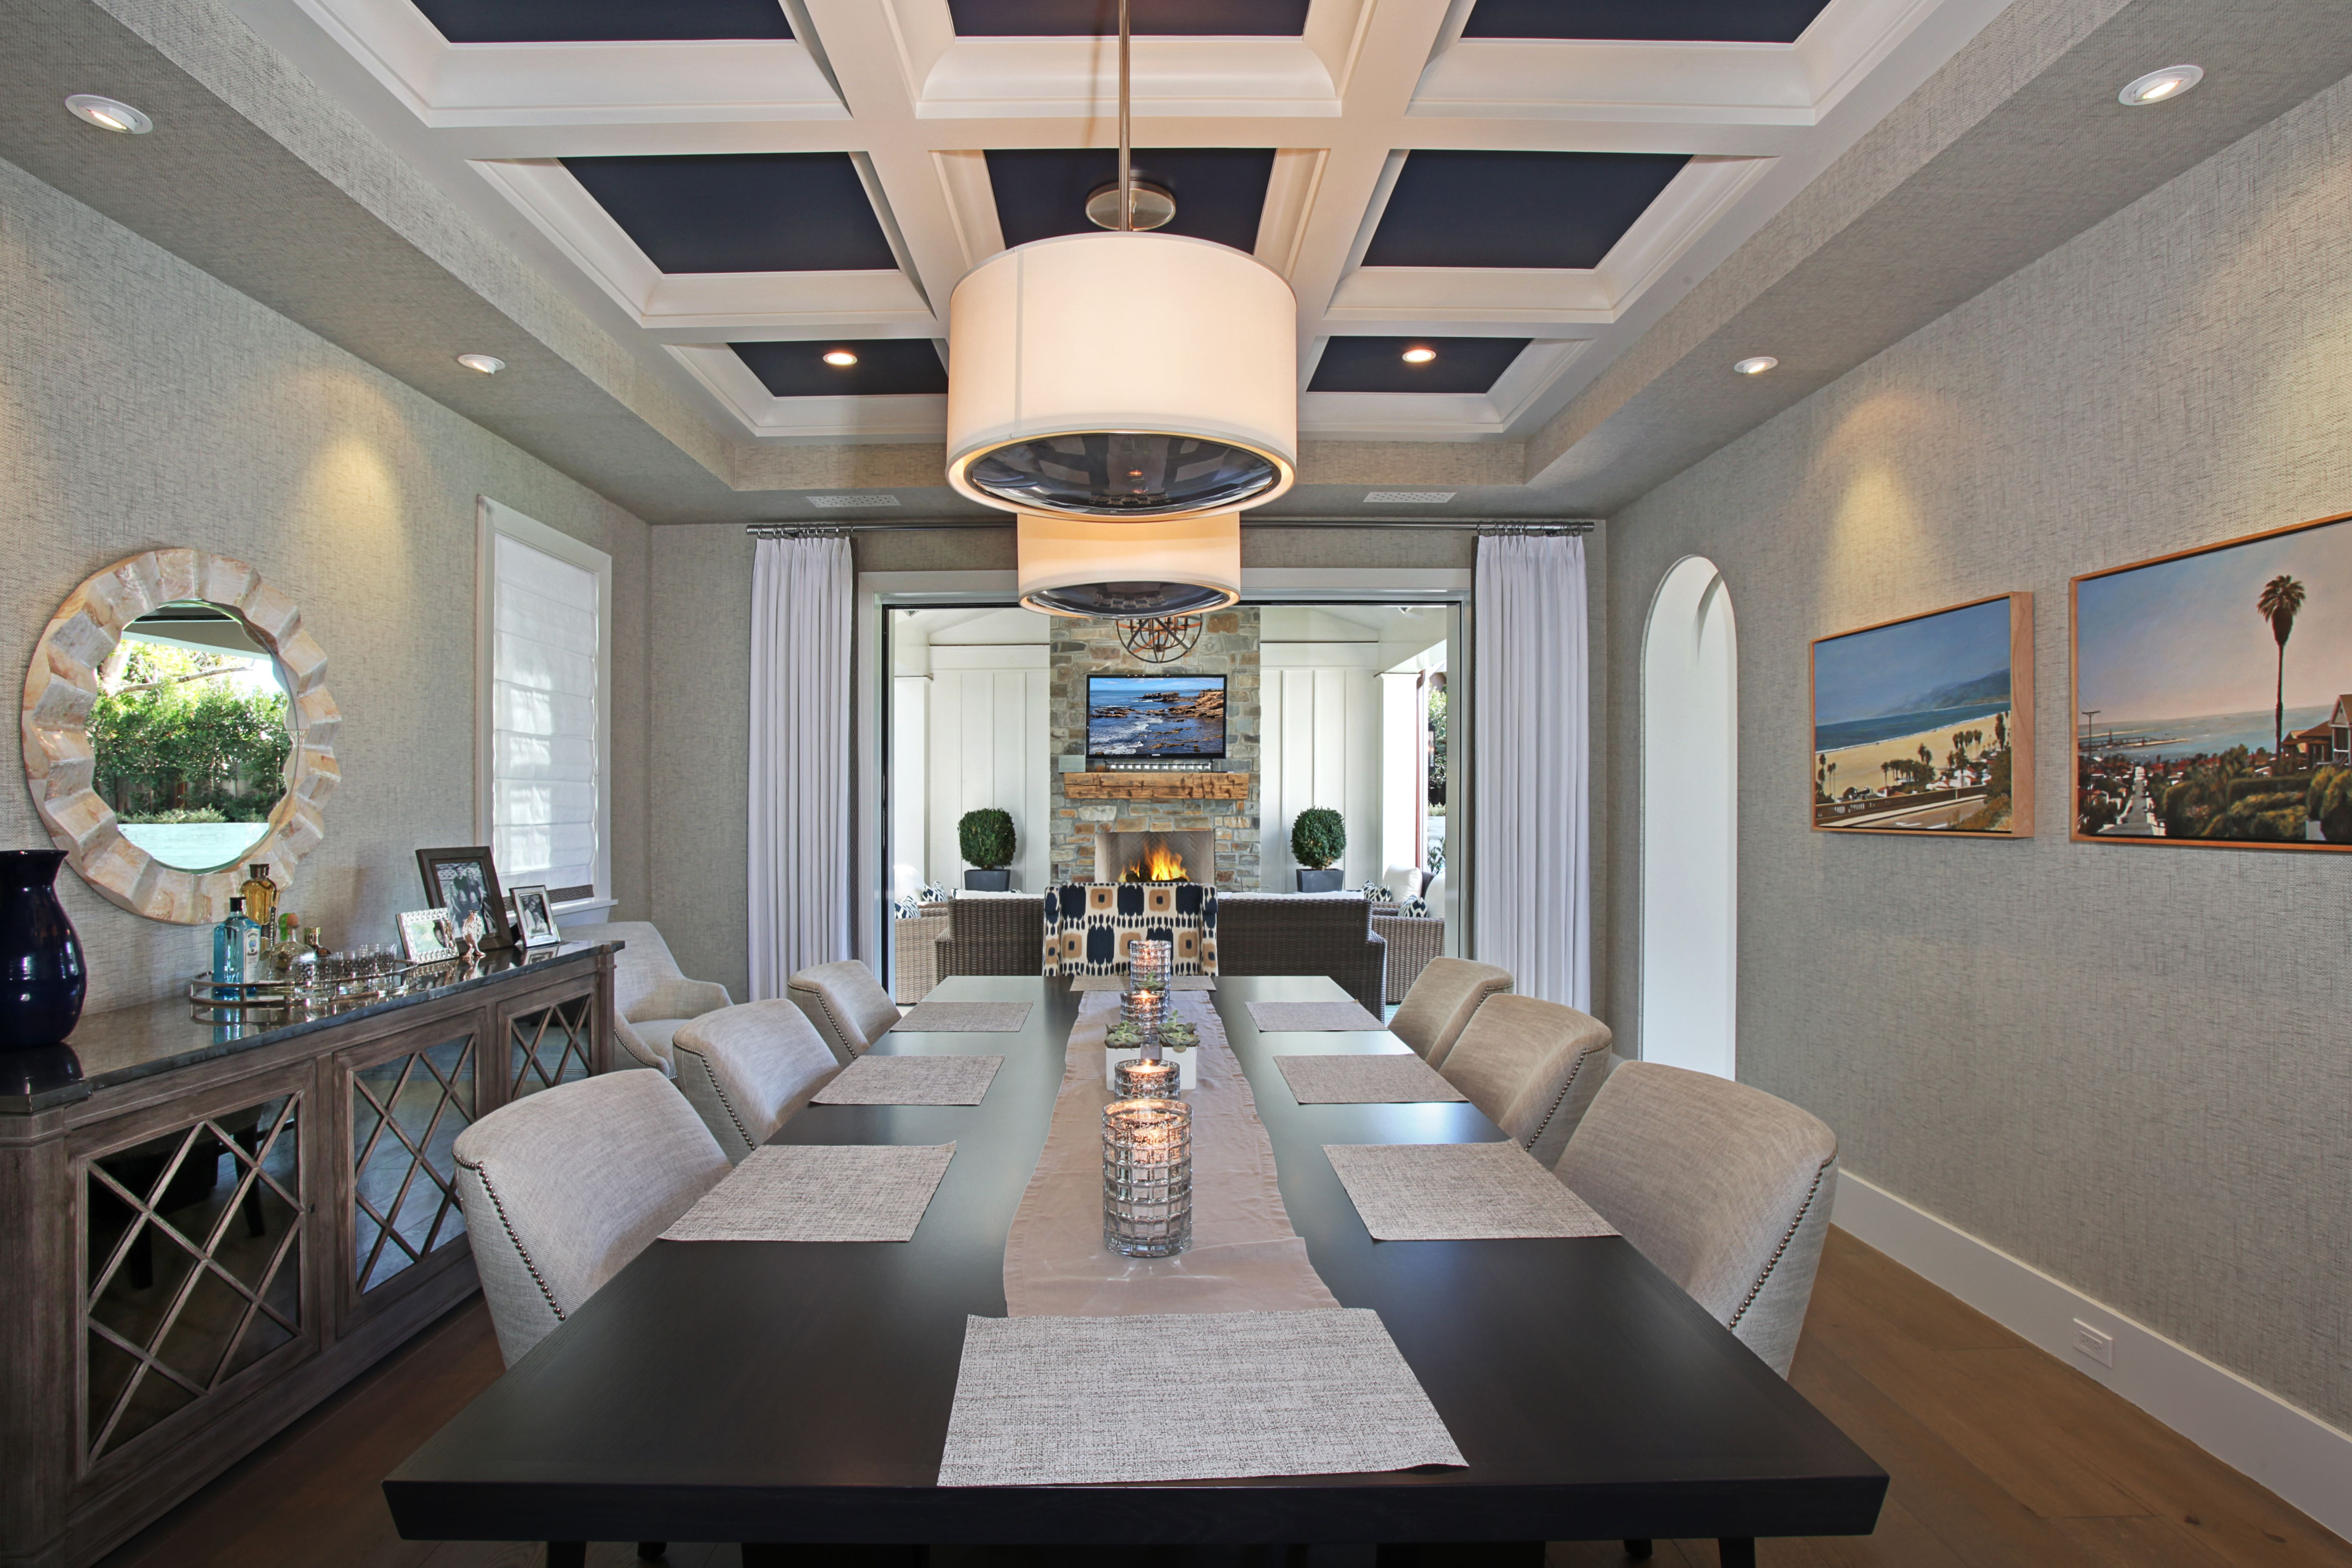 The Blue And White Coffered Ceiling In This Dining Room Really Unique Coffered Ceiling Dining Room Design Inspiration